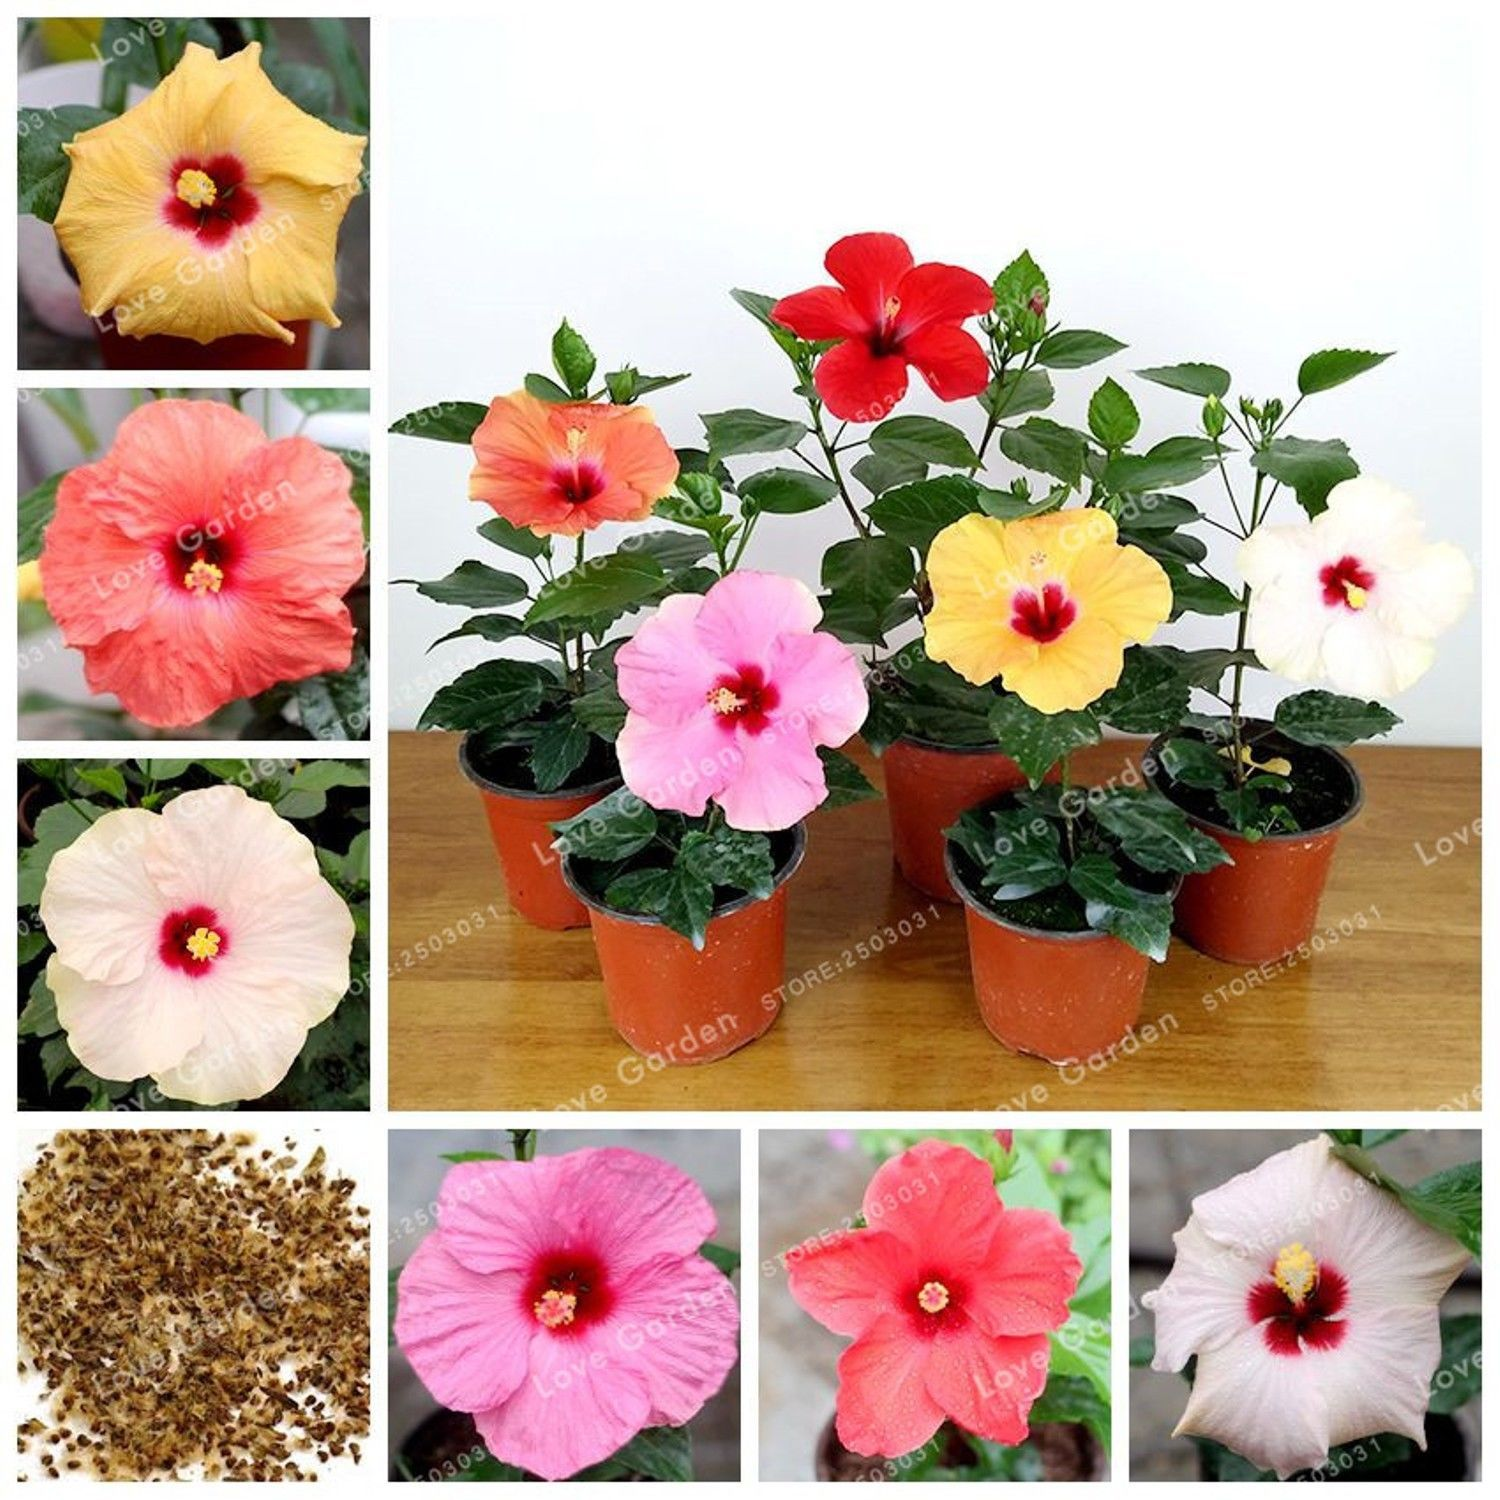 100 Pcsbag Hibiscus Flower Seeds Chinese Rose Seeds Mix Colors To